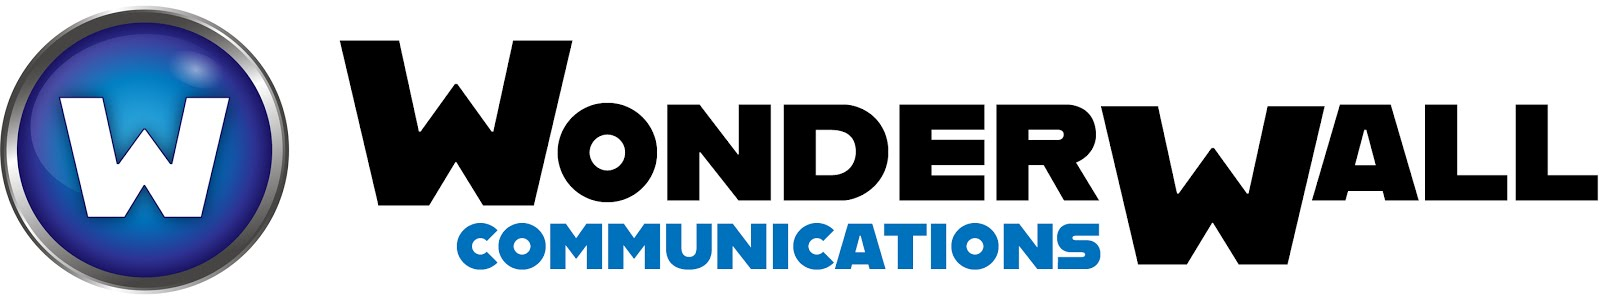 Wonderwall Communications